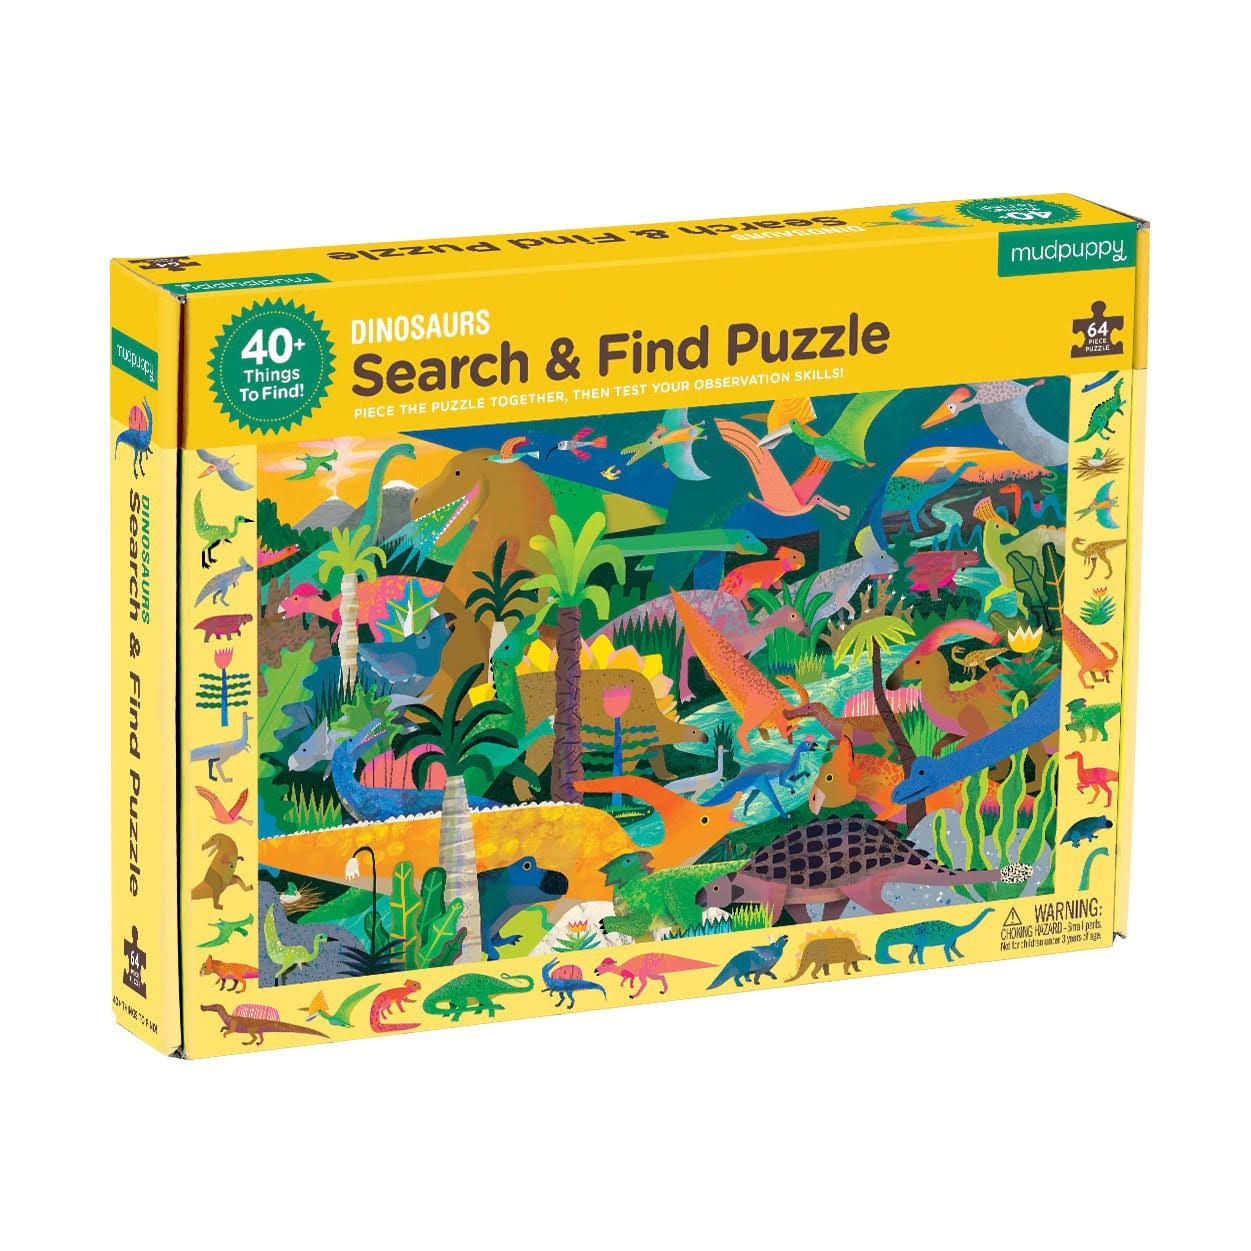 Dinosaurs Search and Find Puzzle - Mudpuppy